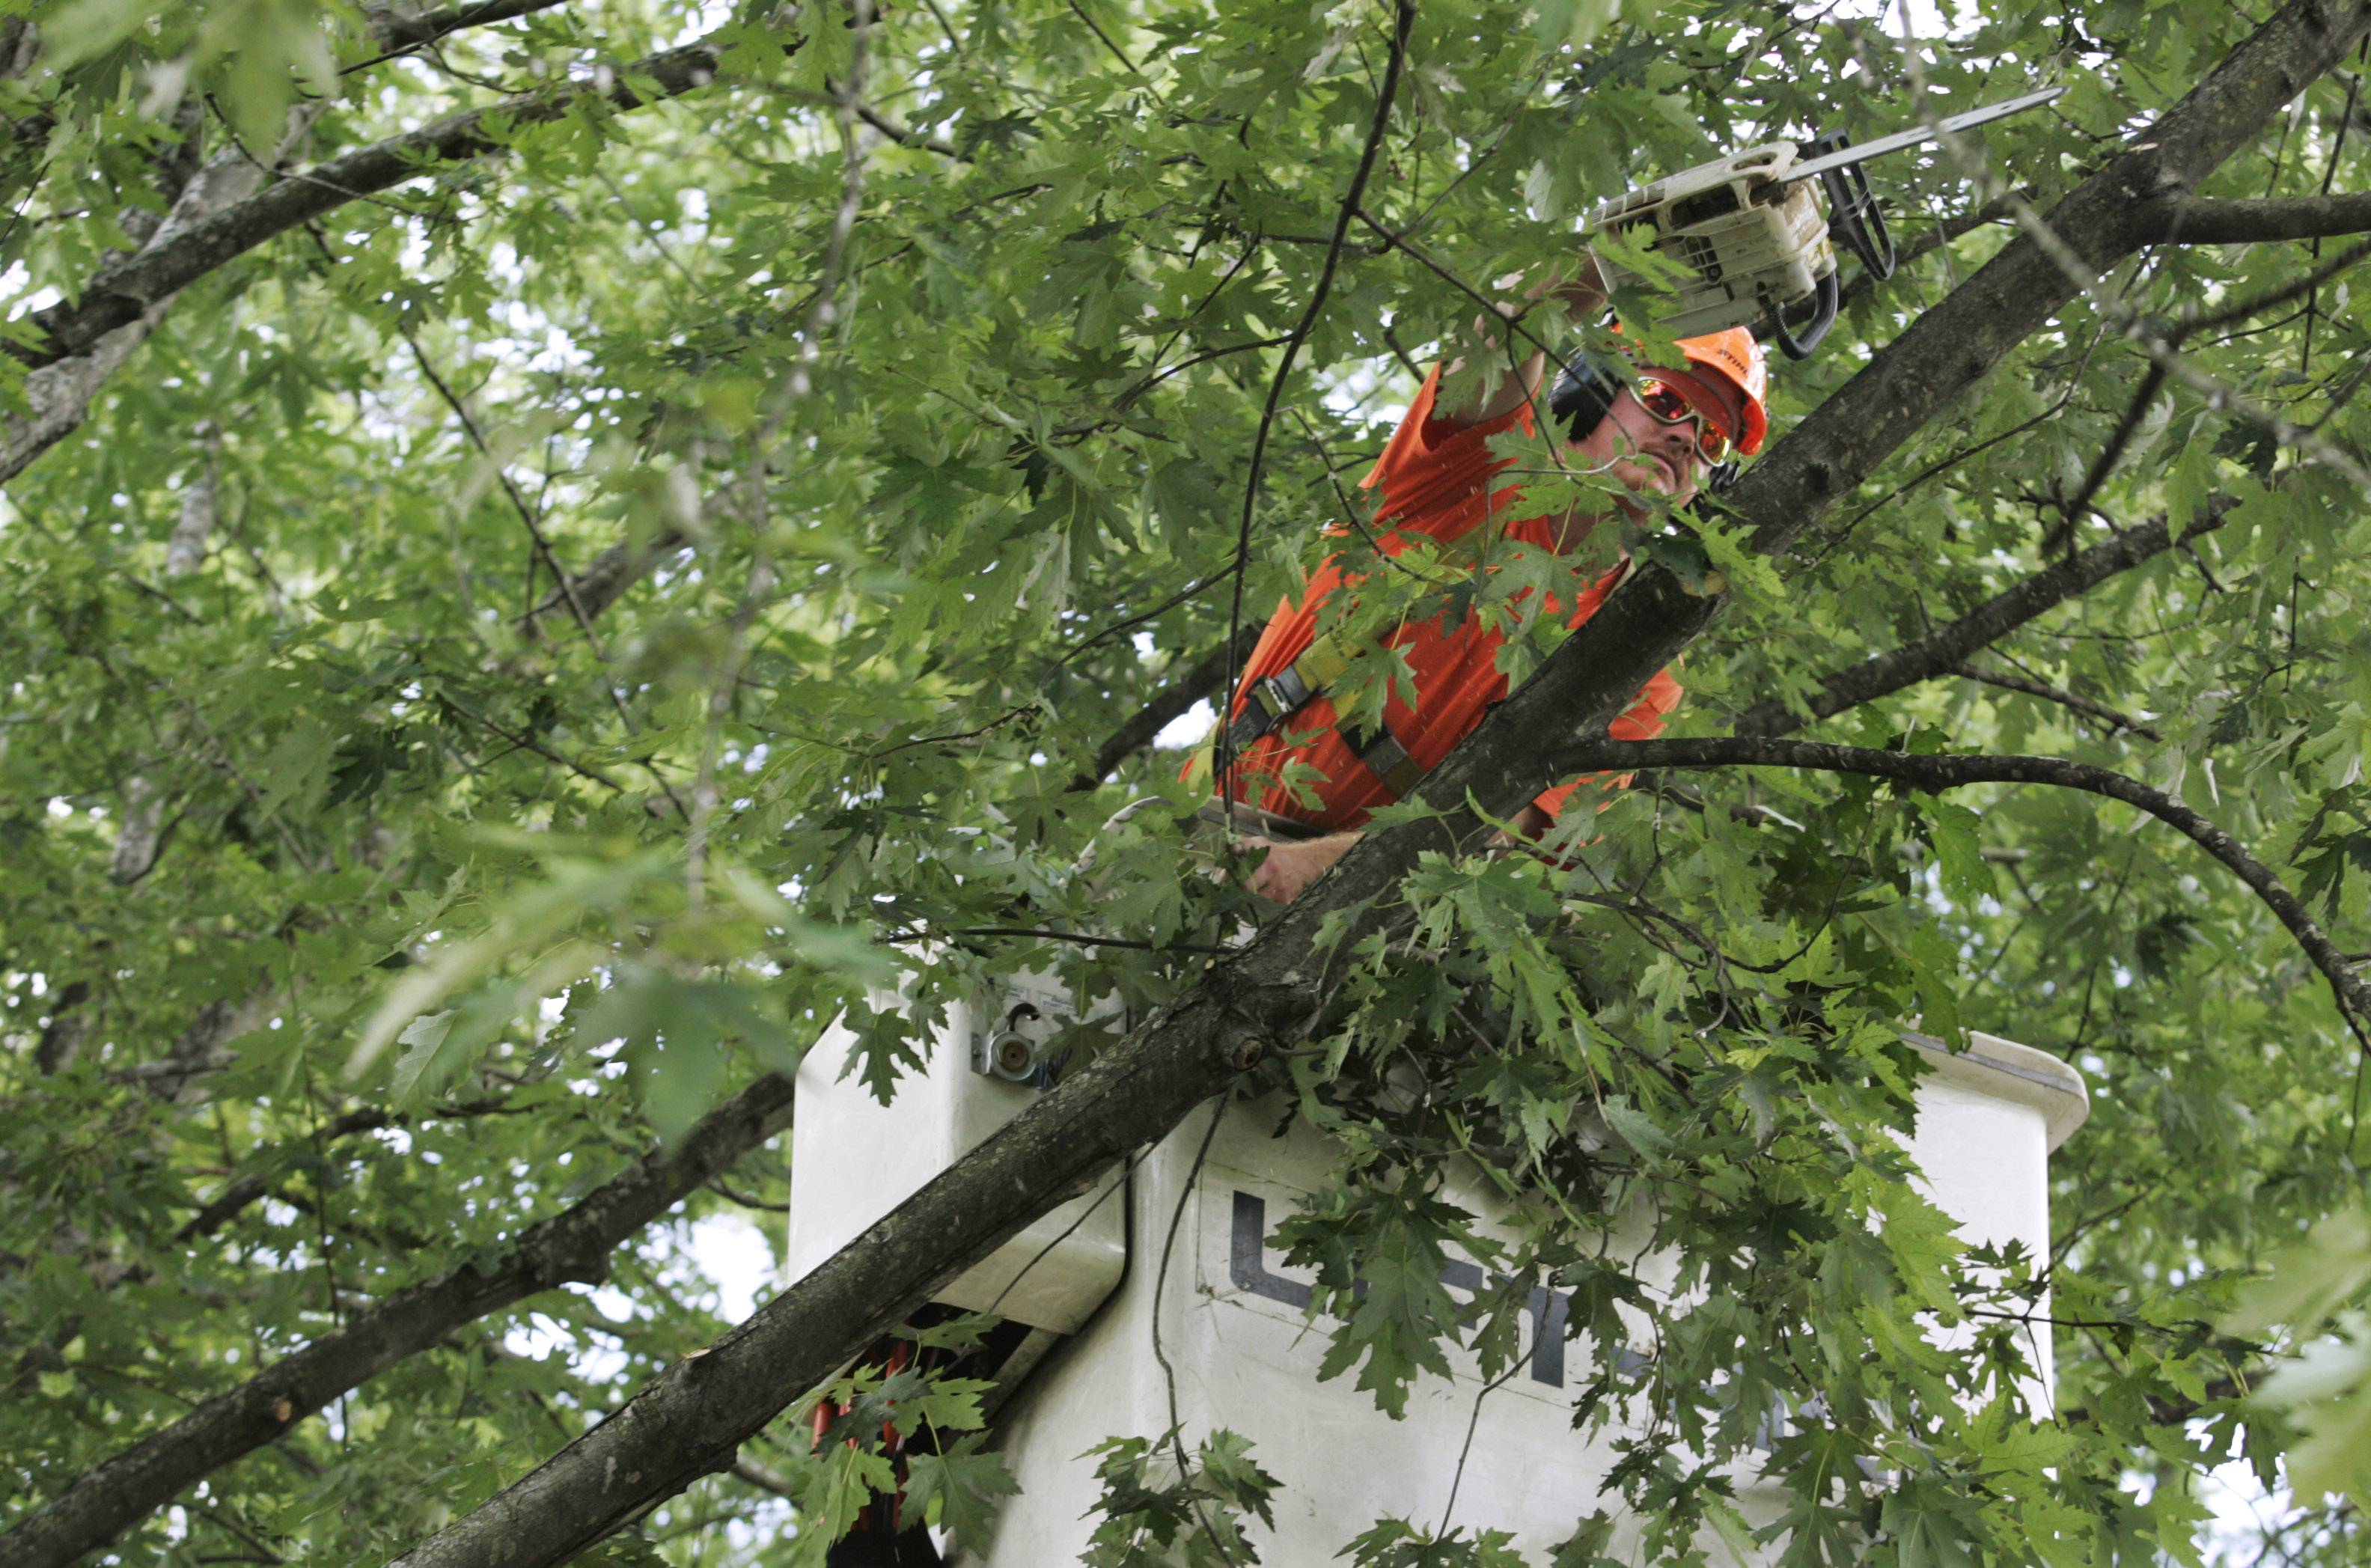 A Geneva worker trims branches high up in a silver maple tree along North Greenwich Lane several years ago. The city plans to count the trees on parkways, log what kinds of trees they are, and determine their health.